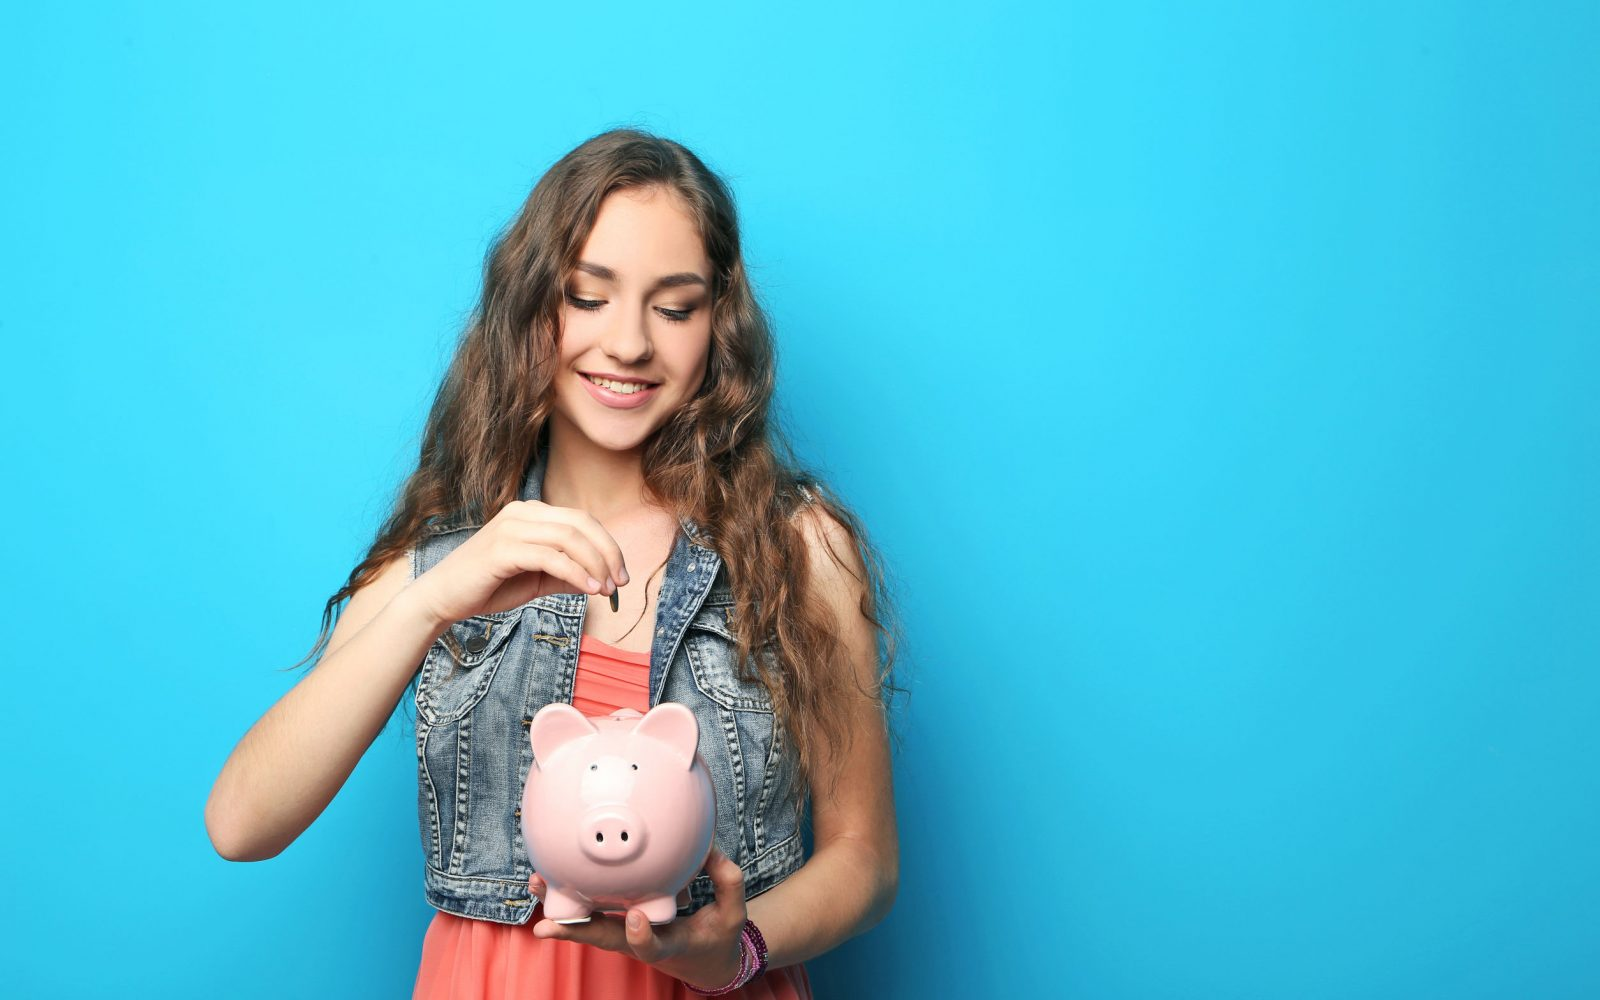 8 Really Easy Ways To Improve Your Finances Right Away. I've never been good at budgeting and my debt is out of control! These are some great ideas for anyone looking for ways to make and save money. Time to get my financial life in order. Thanks for sharing!